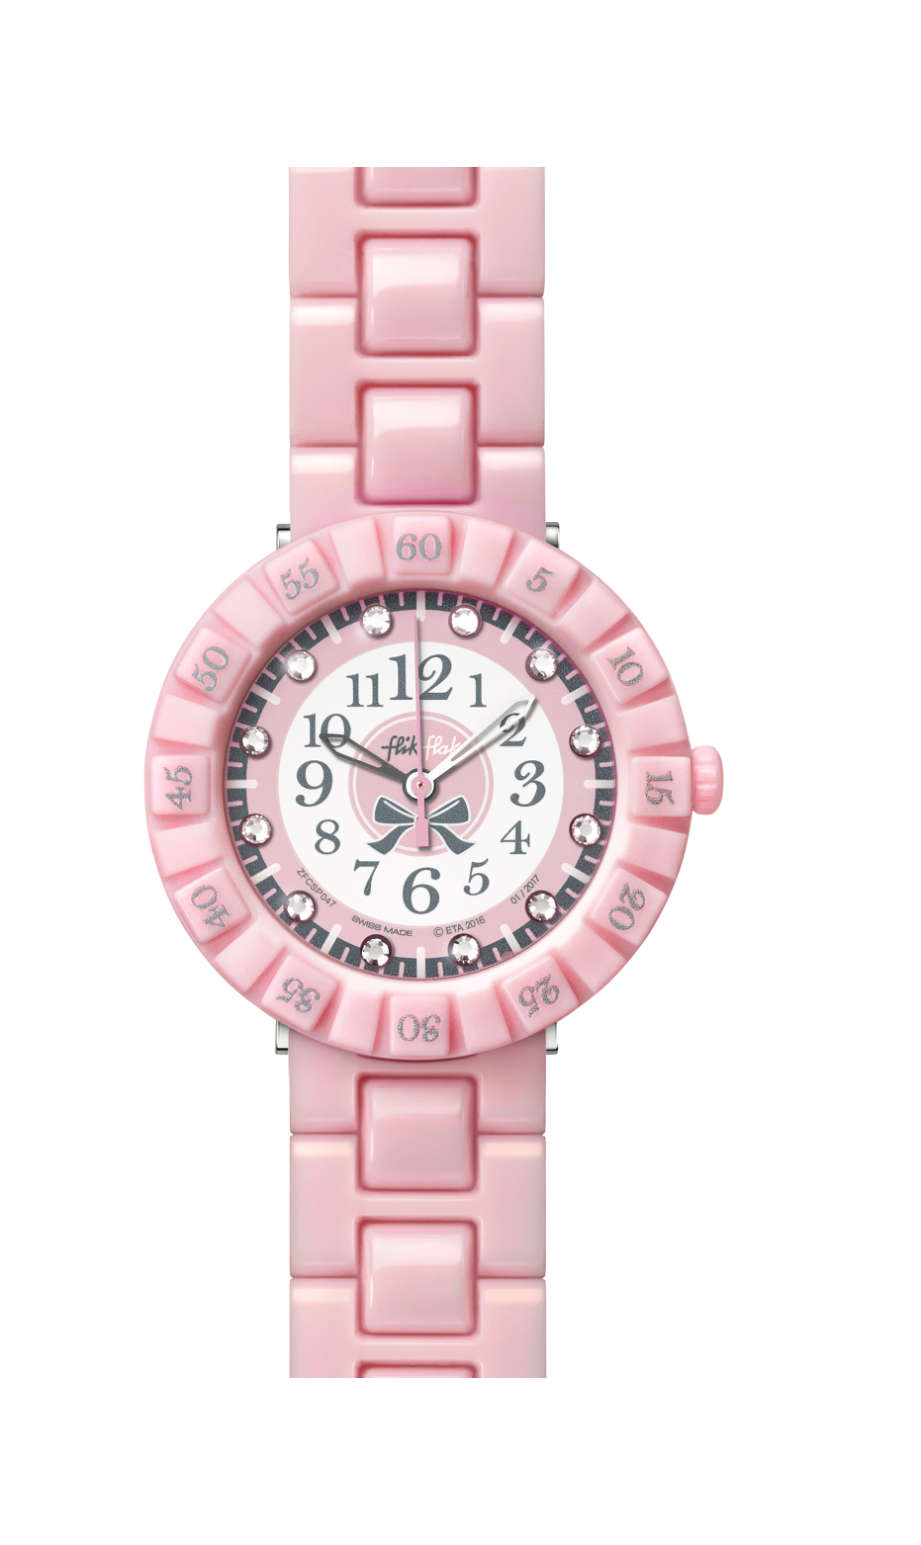 Swatch - PRETTY ROSE - 1